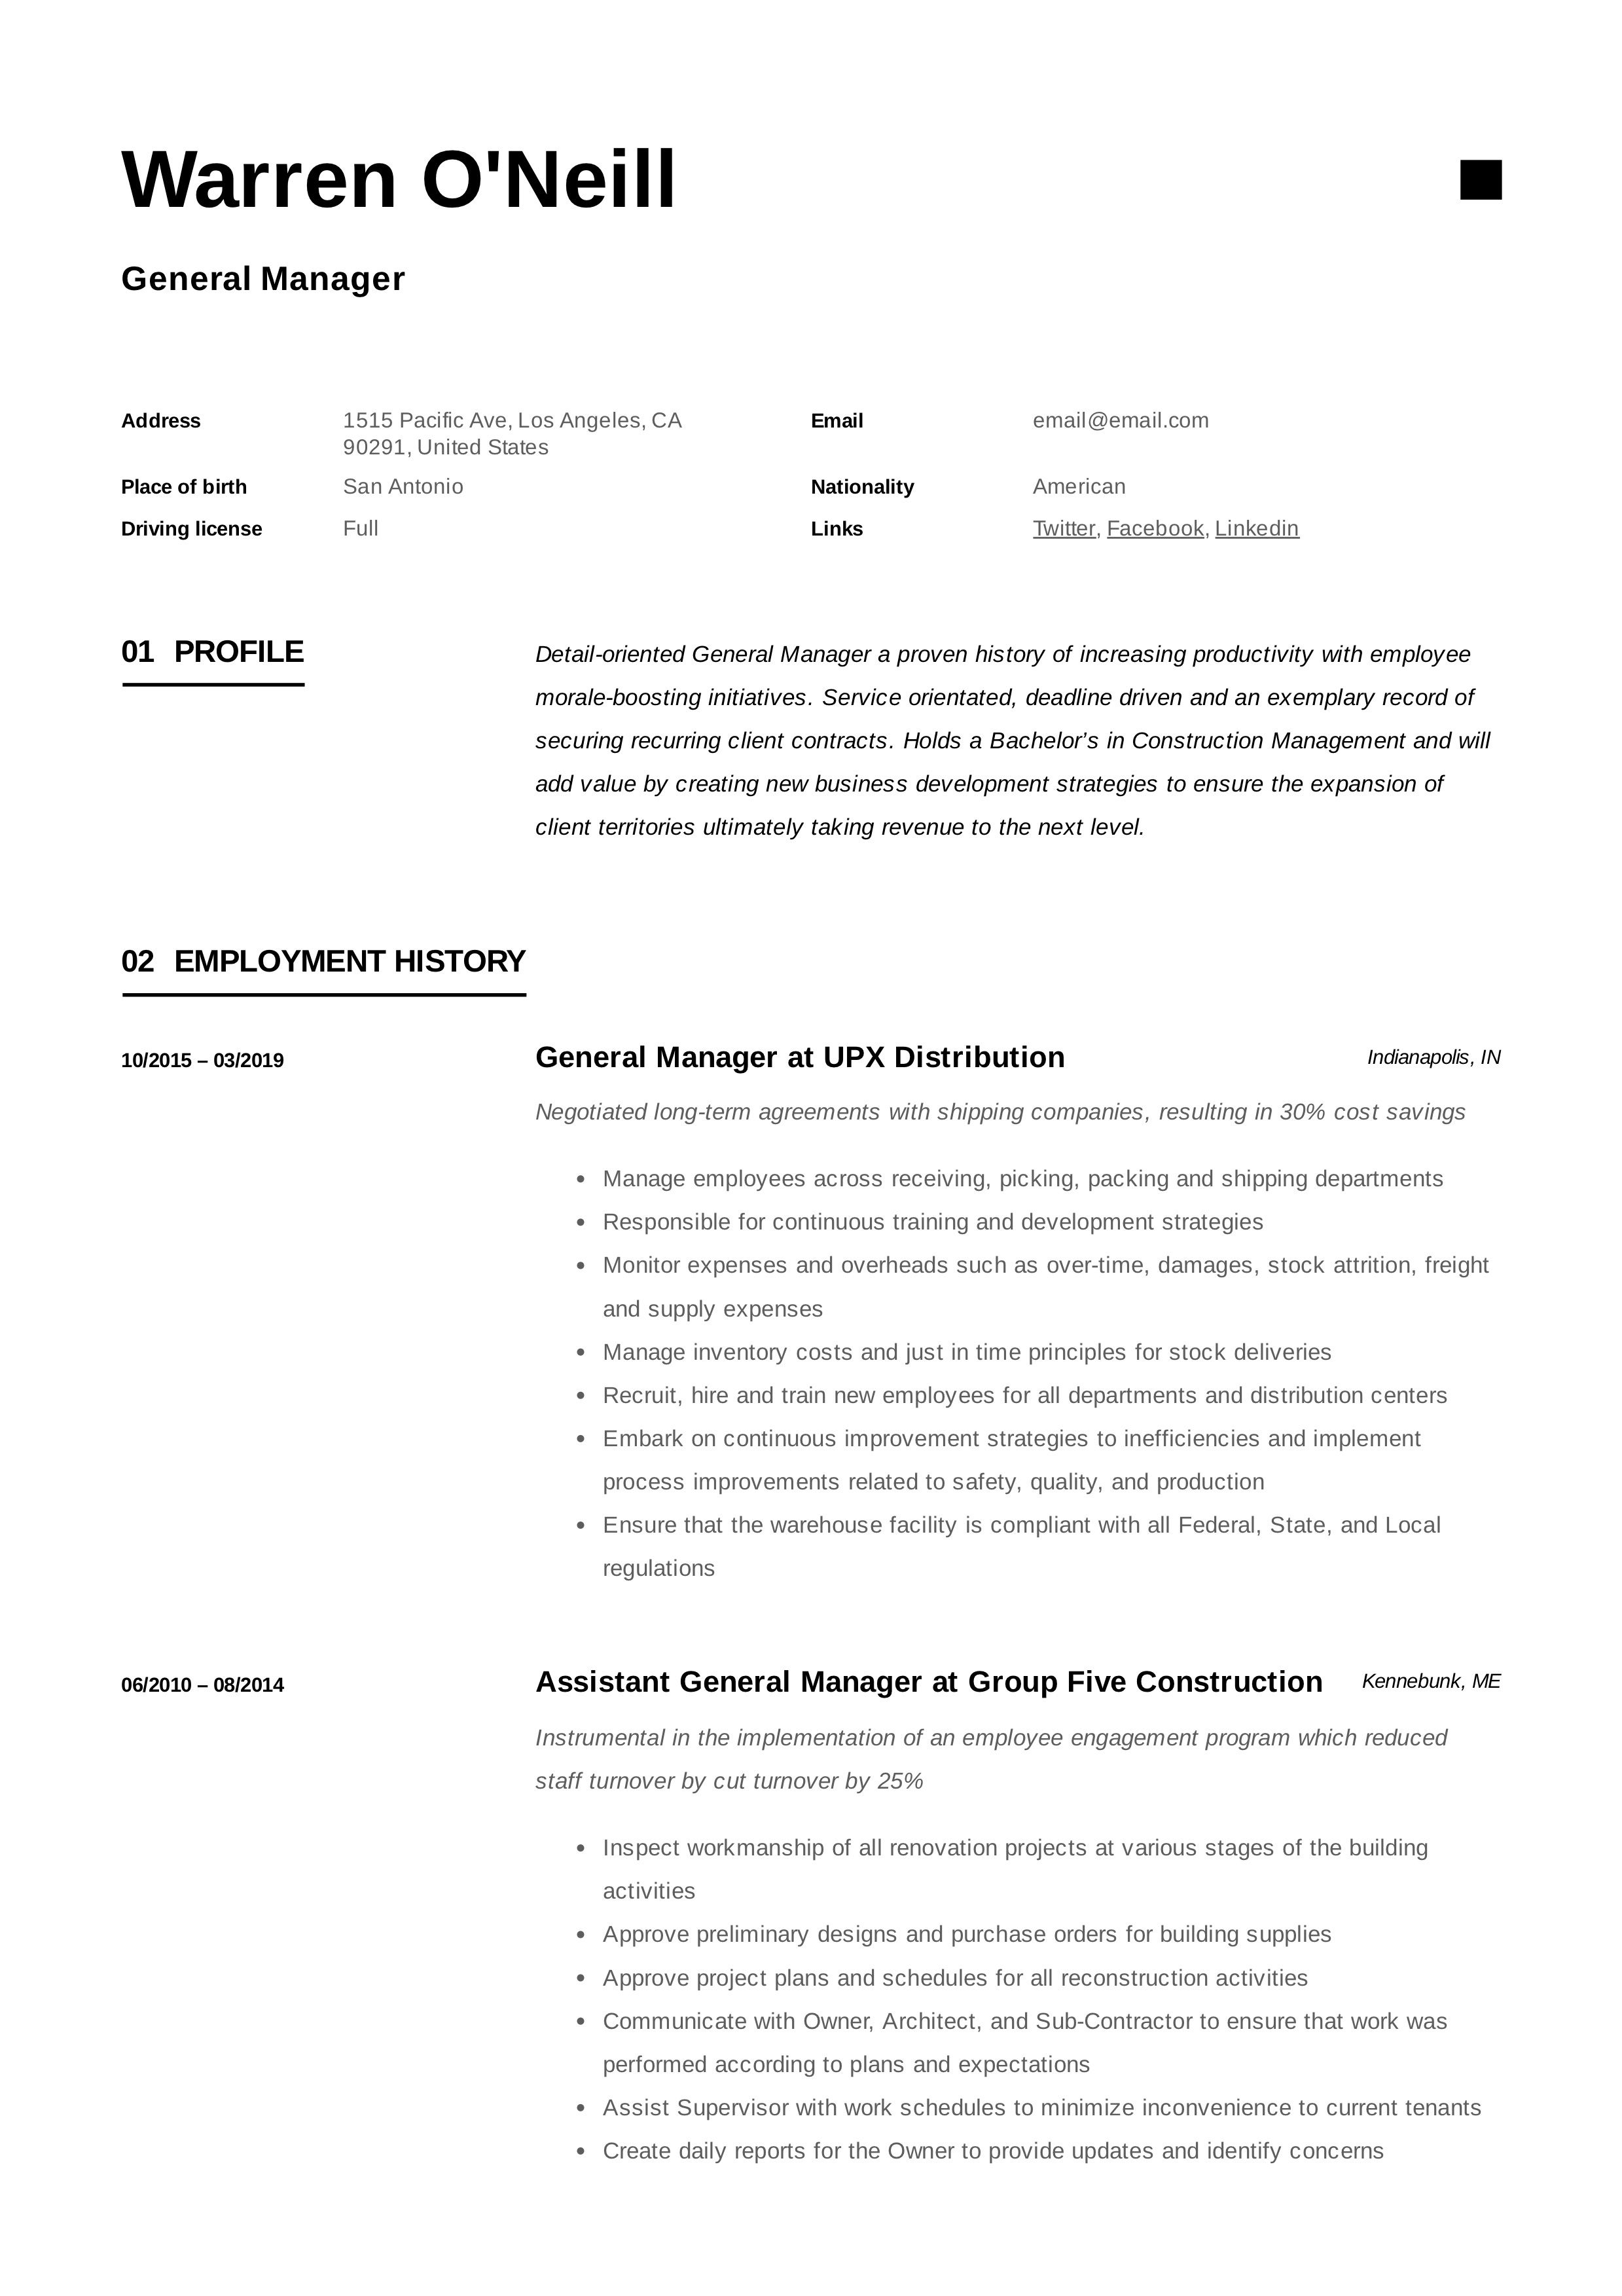 General Manager Resume Template Manager Resume Resume Examples Job Resume Examples